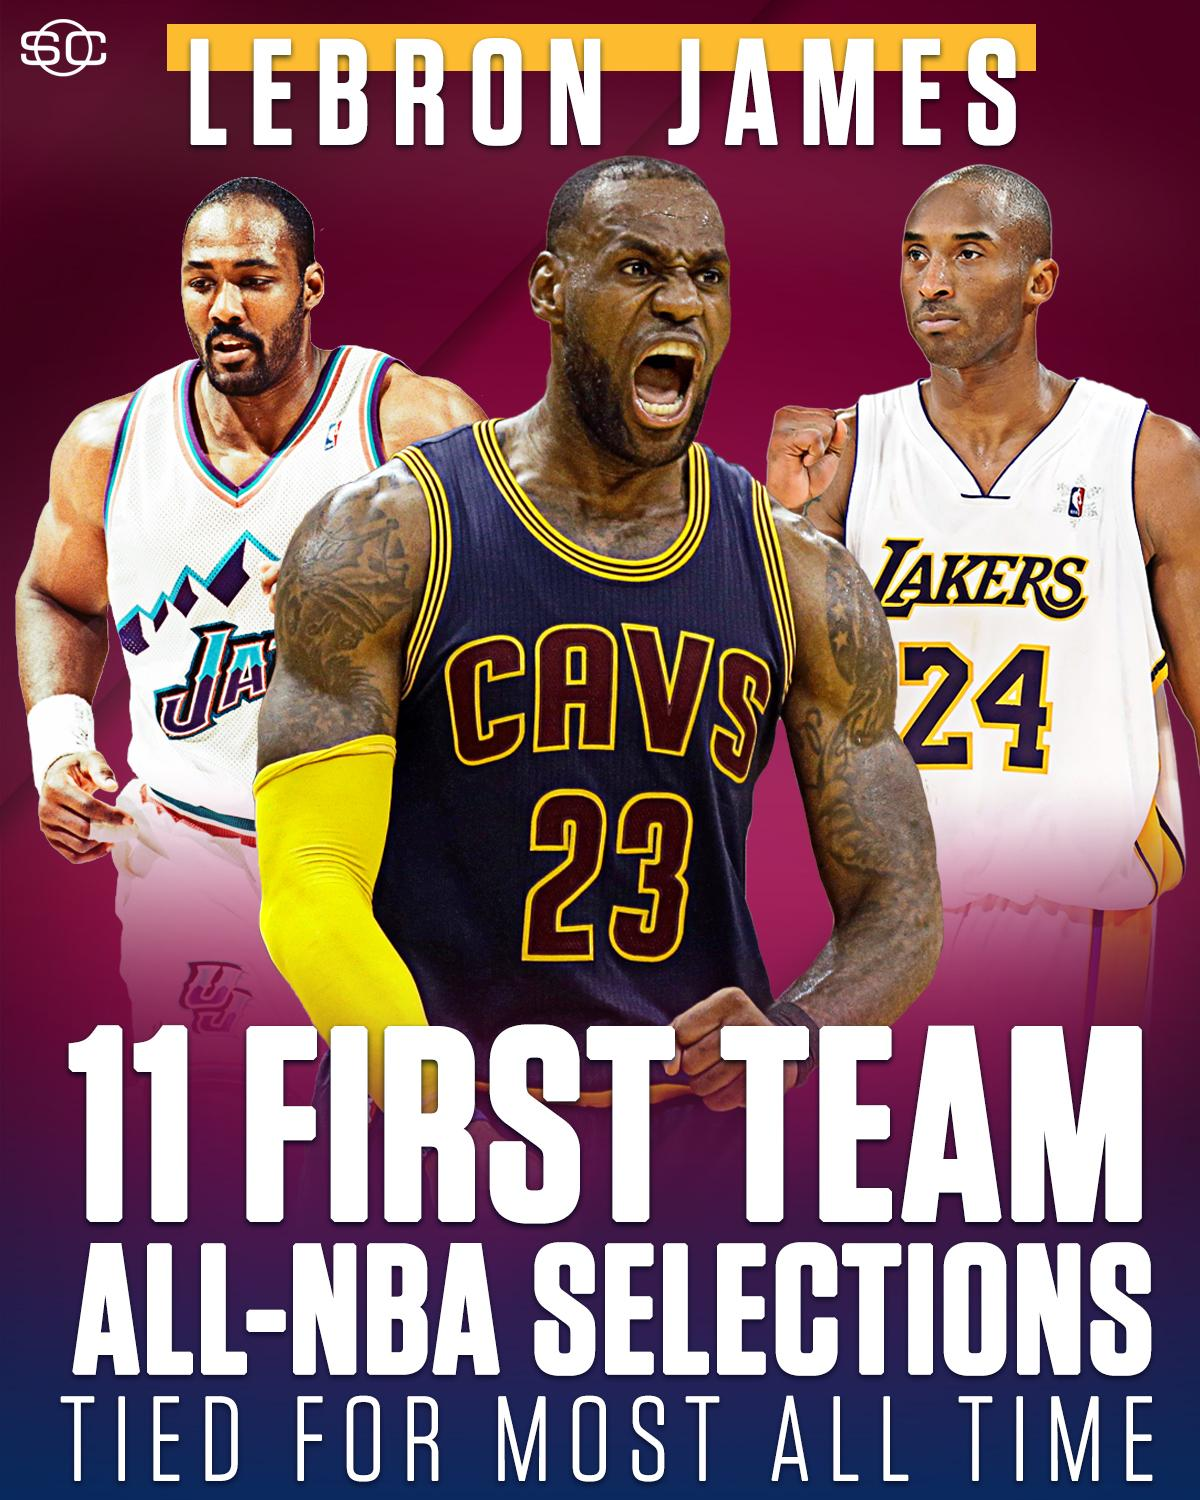 LeBron James ties Kobe Bryant and Karl Malone for the most First Team All-NBA selections in NBA history. https://t.co/ICLnWrwDjL